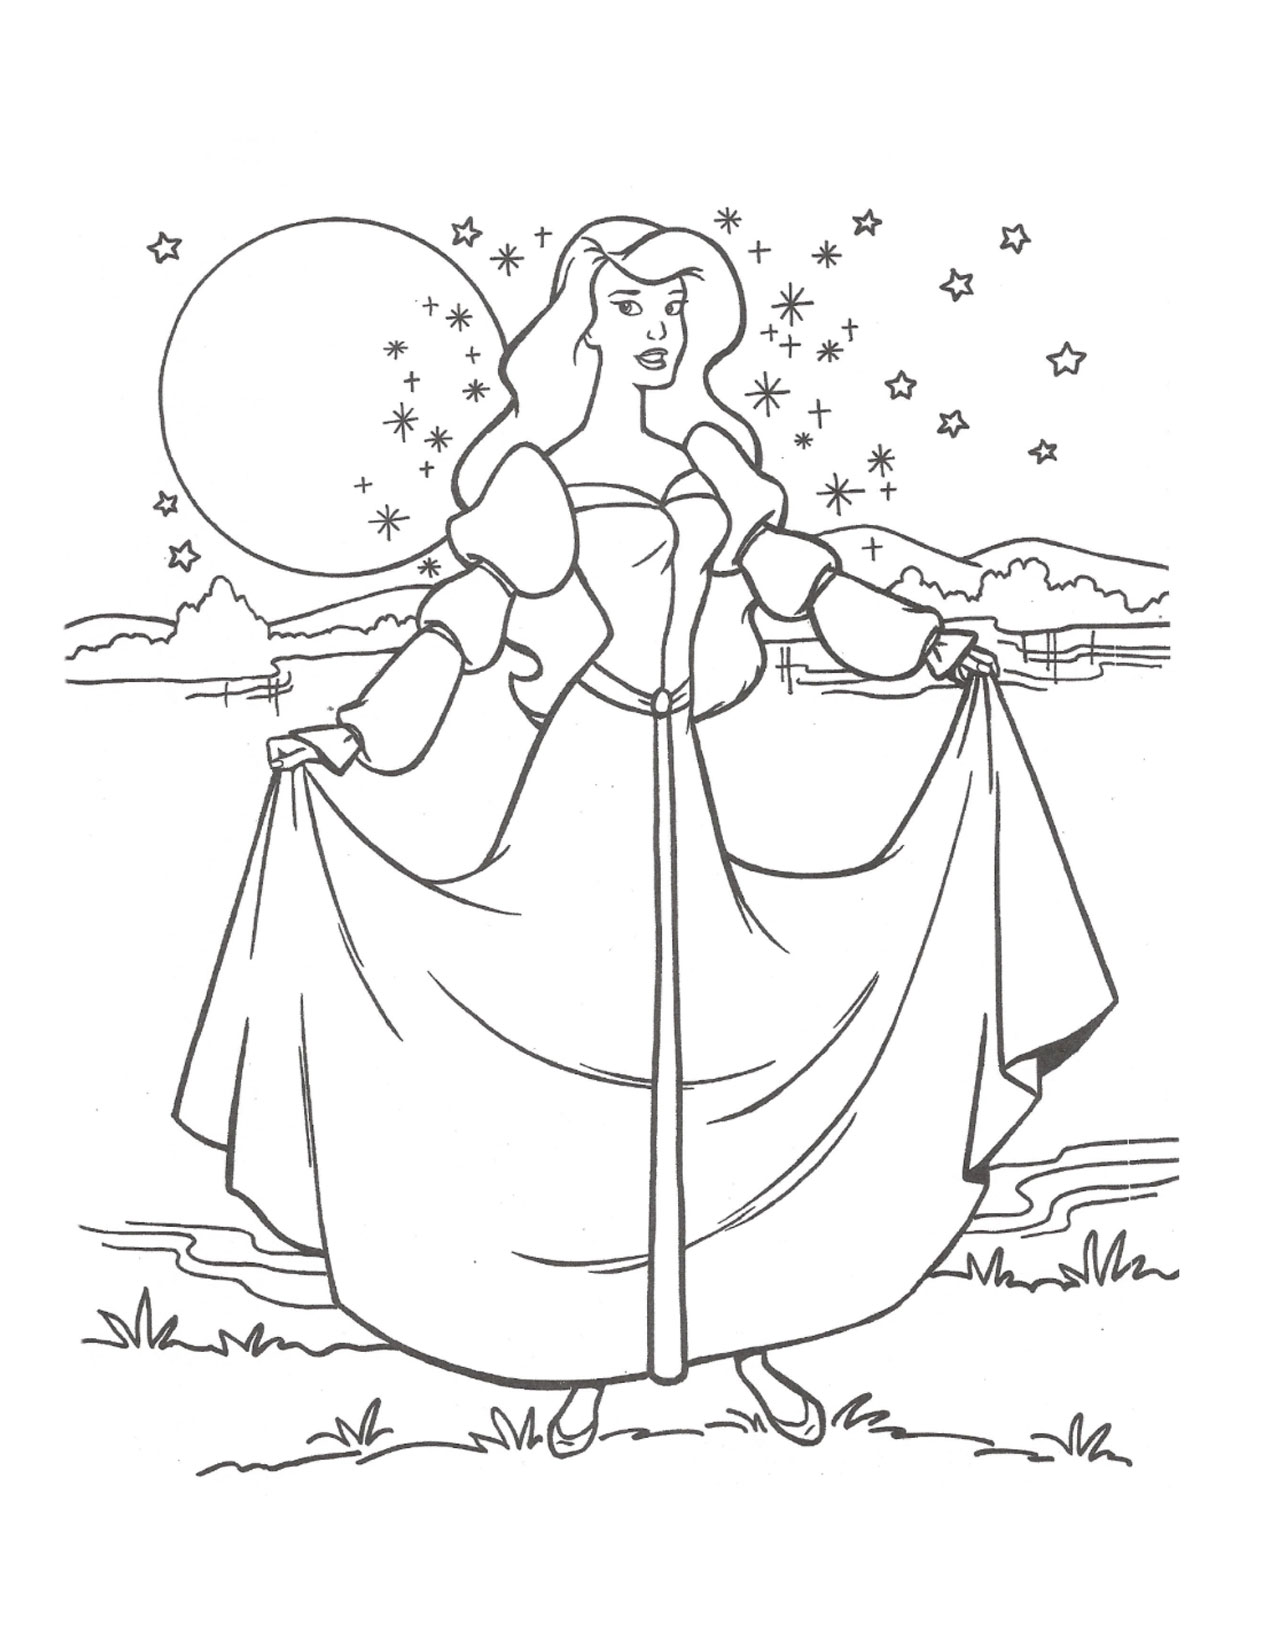 Swan Princess Odette coloring page